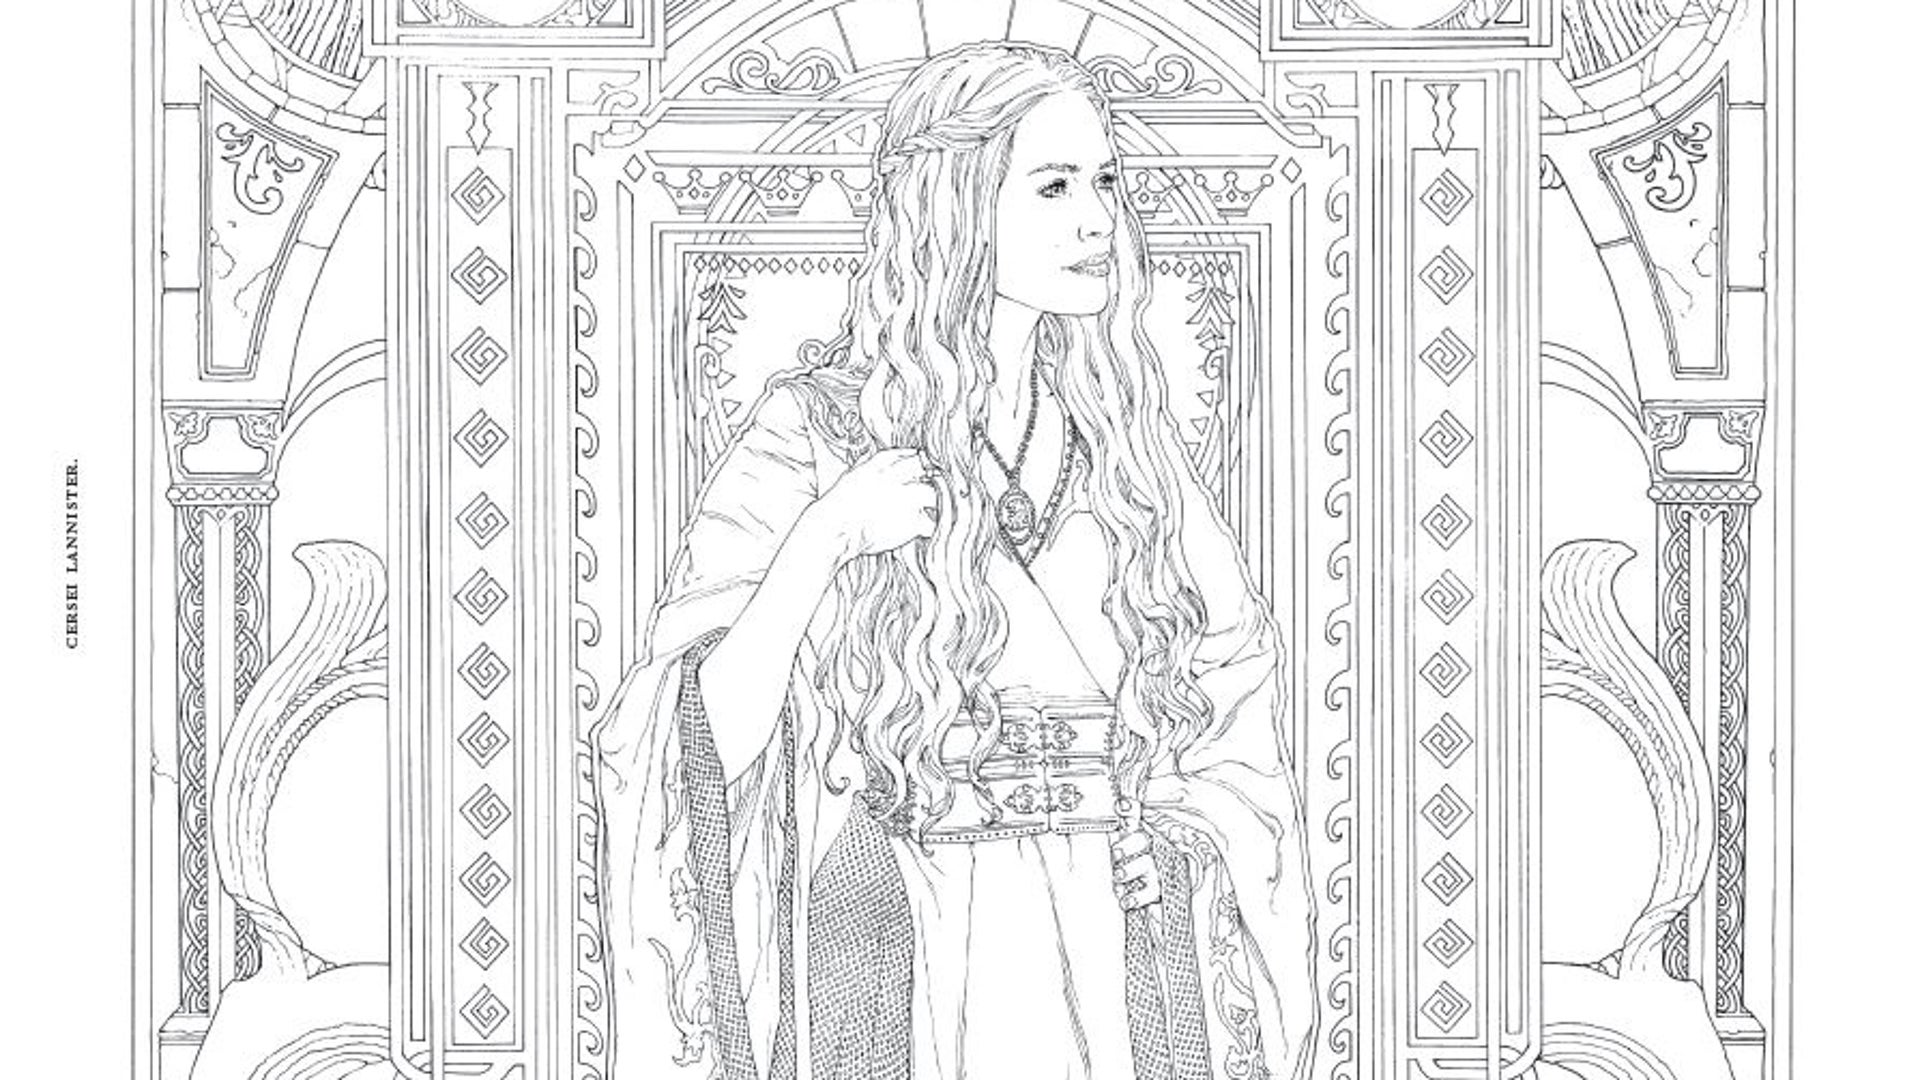 HBO's Game of Thrones Coloring Book: Cersei Lannister